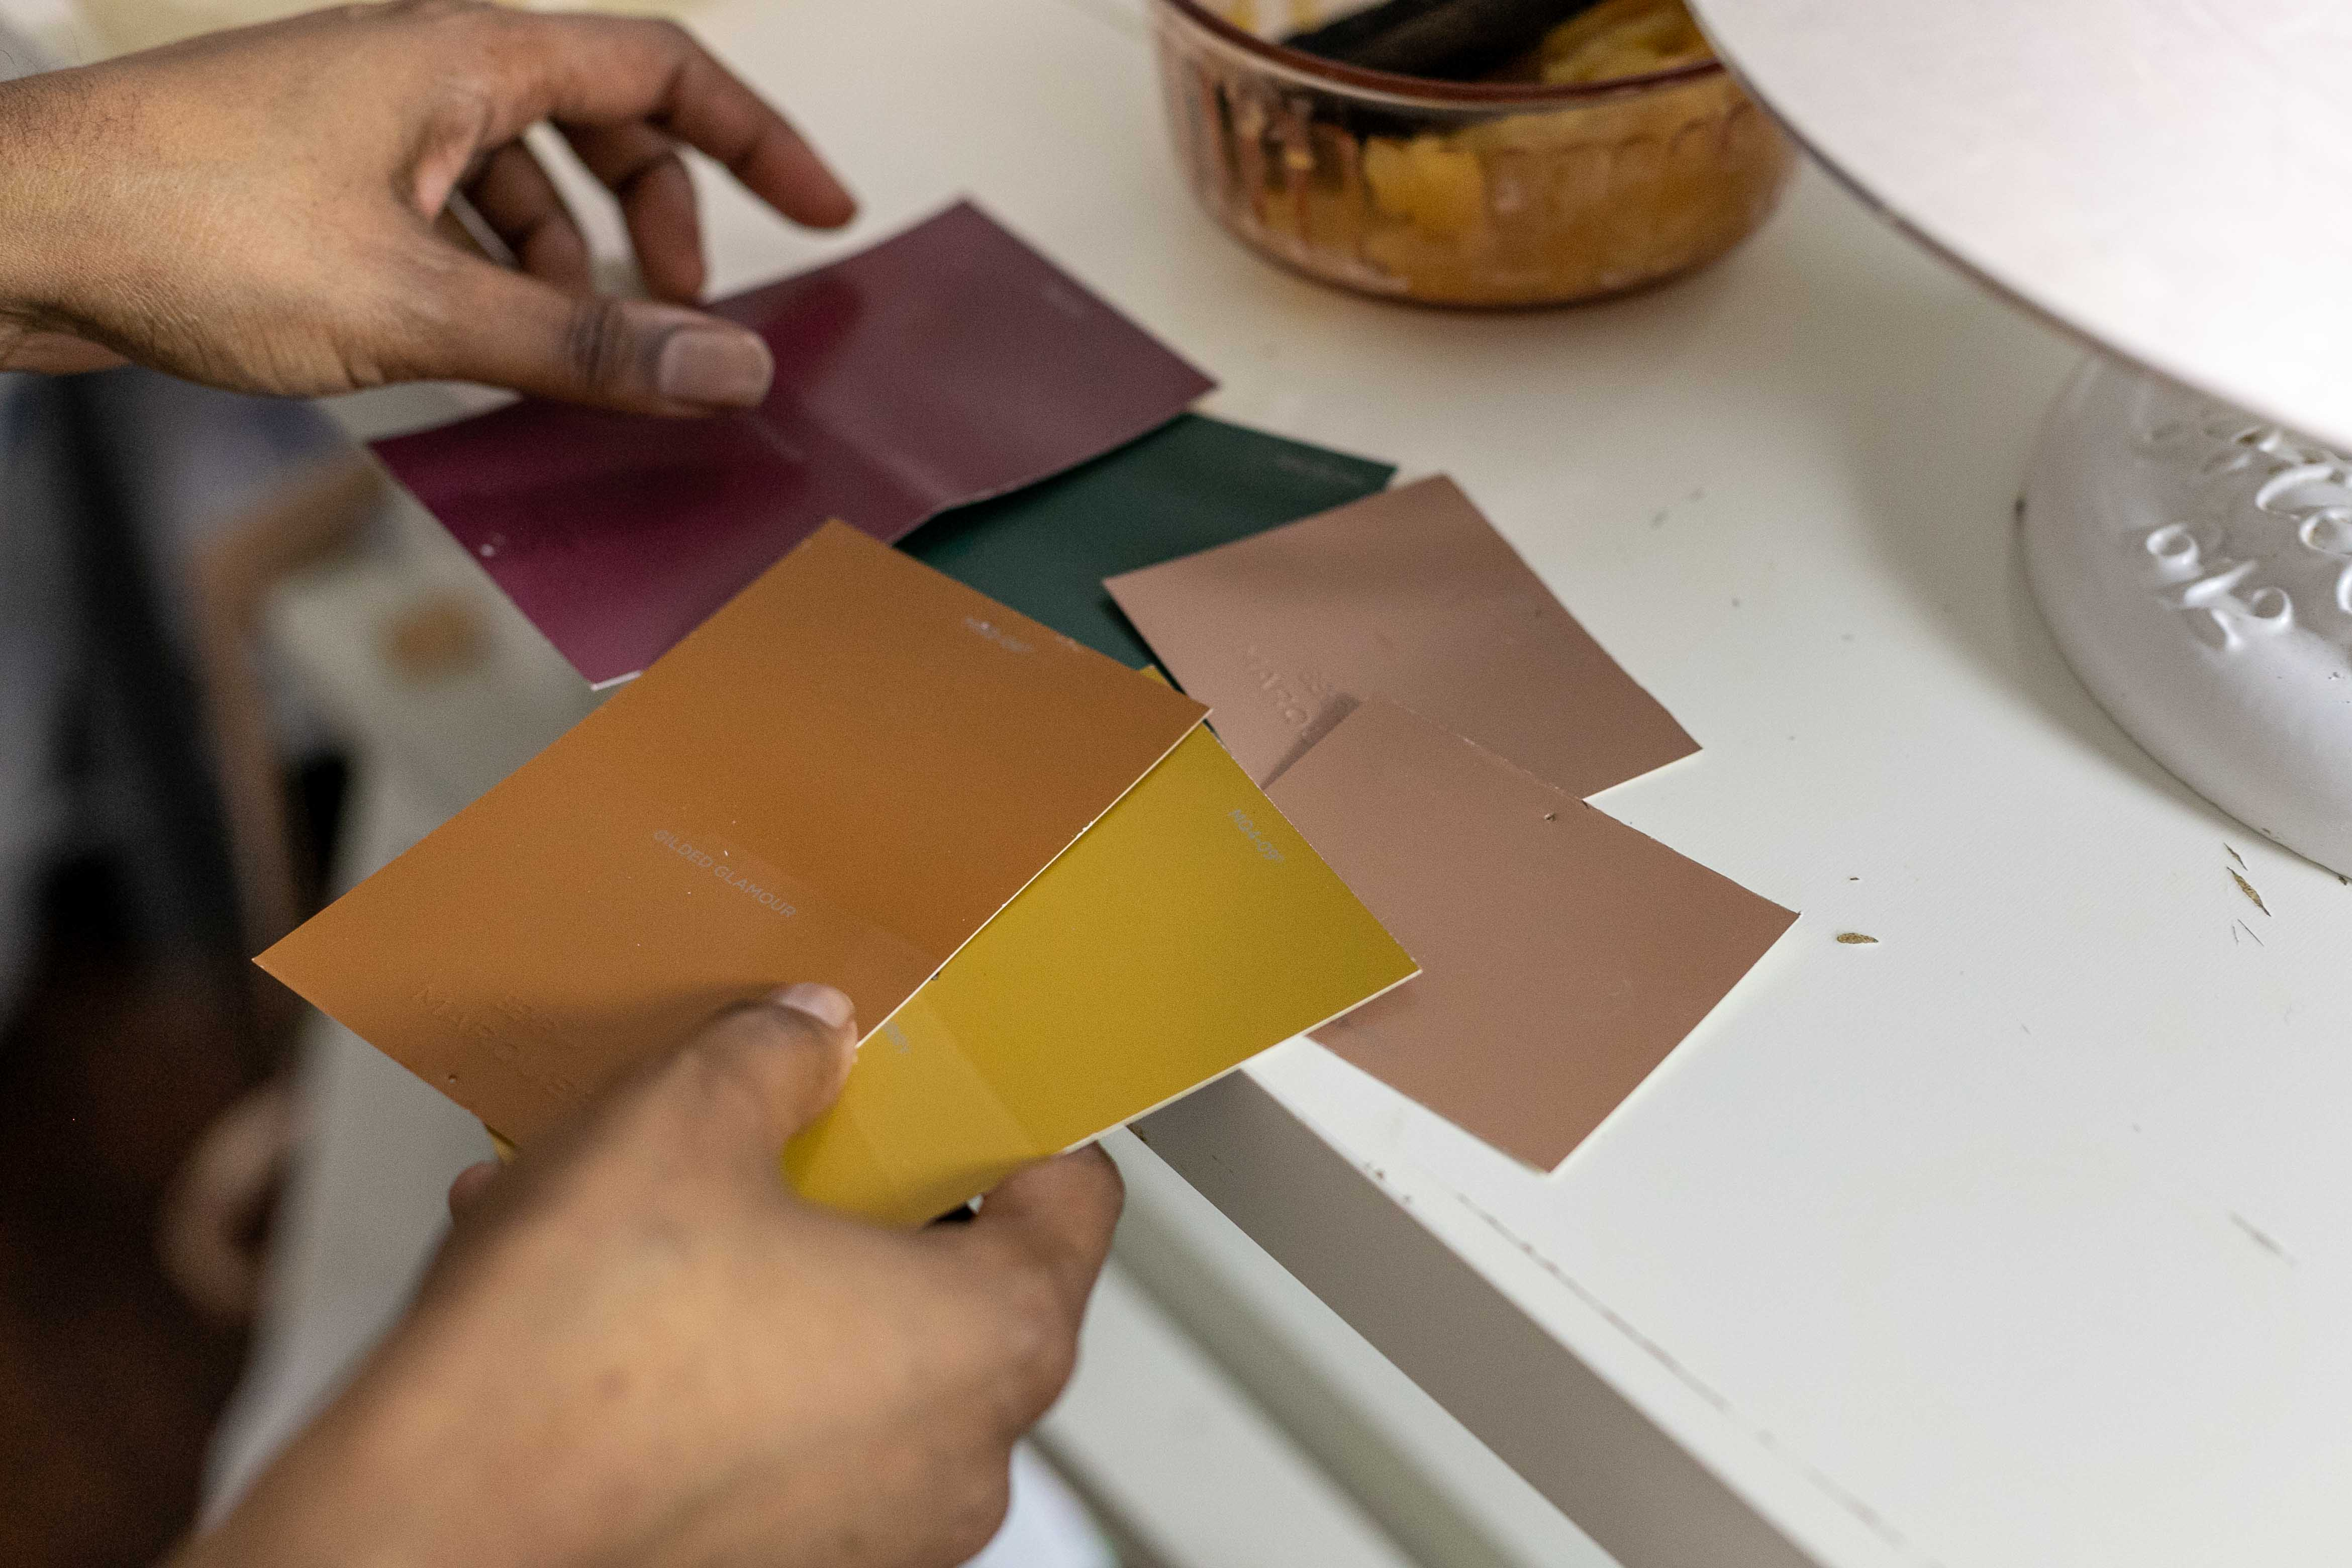 Selecting color swatches from paint store